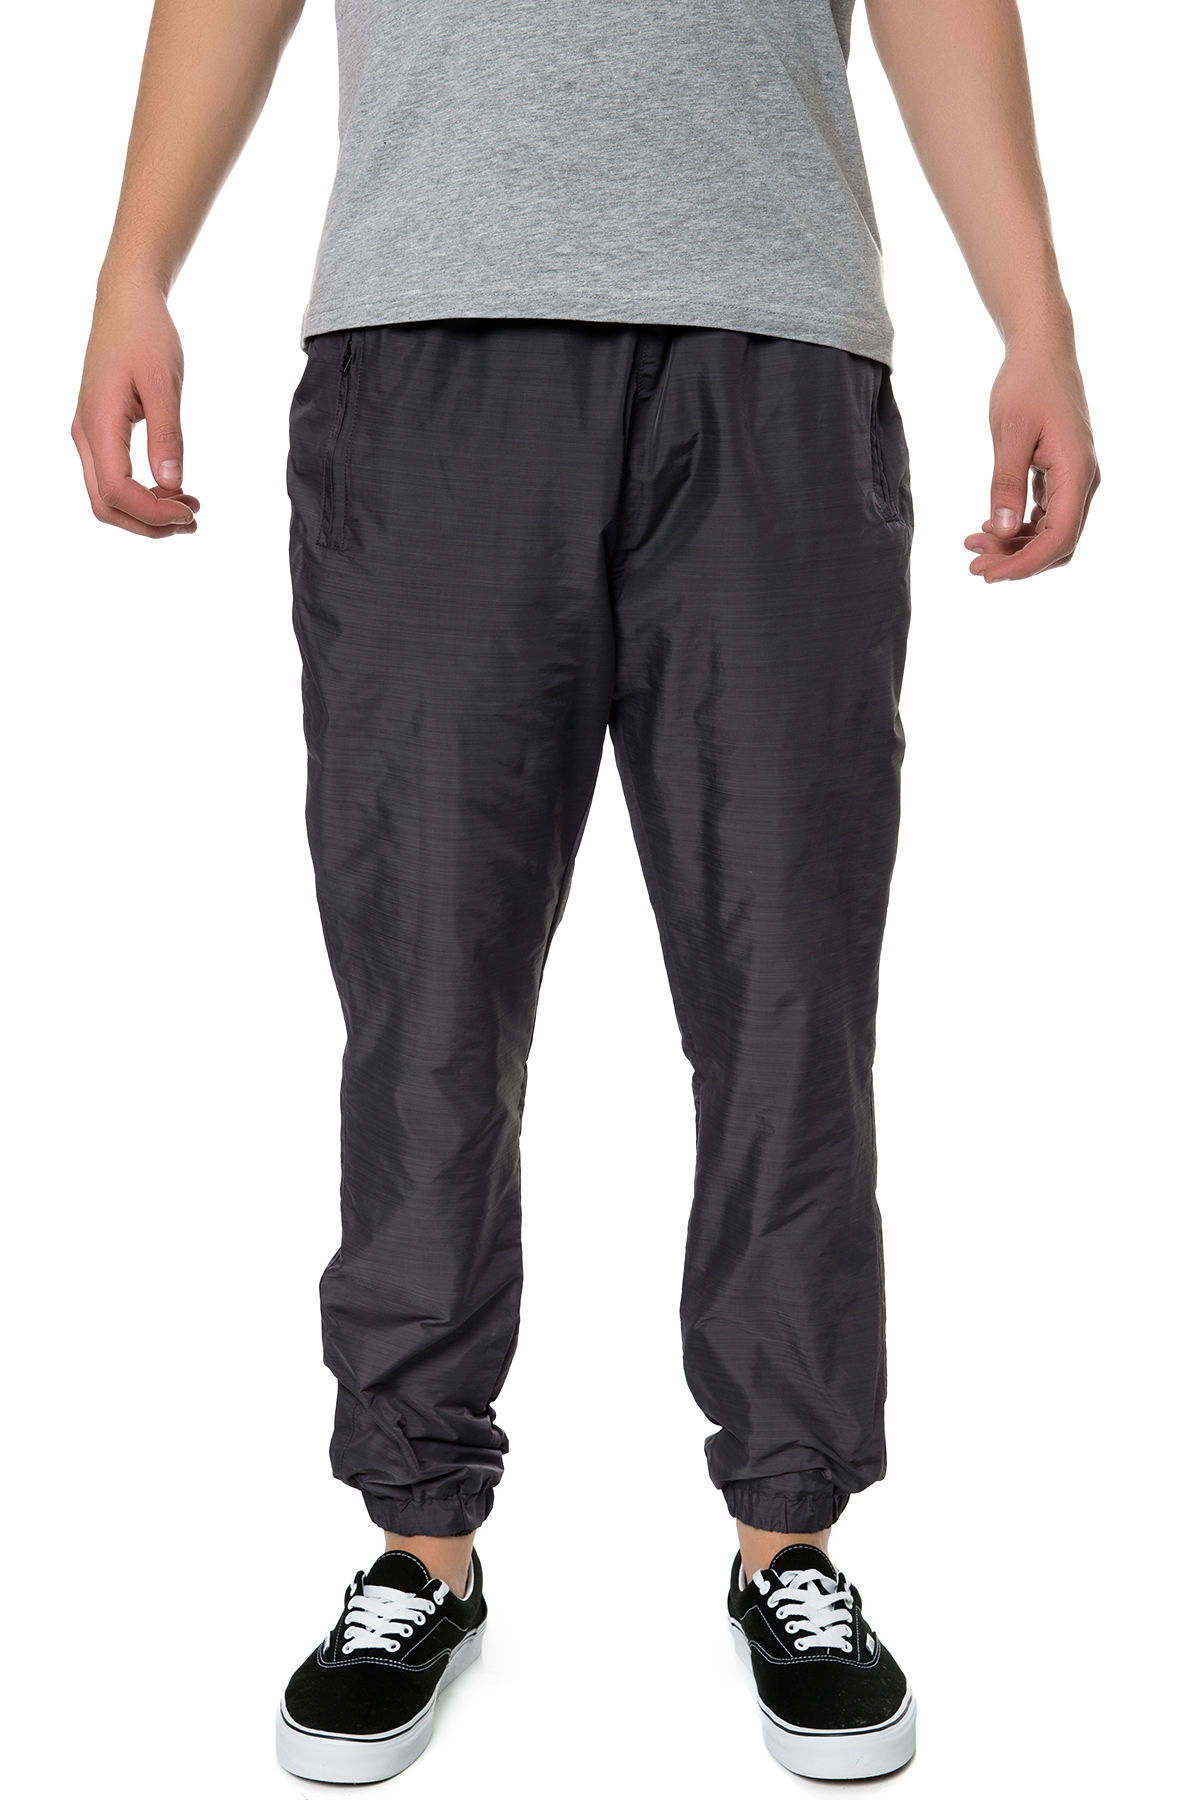 Image of The Gates Nylon Pants in Black